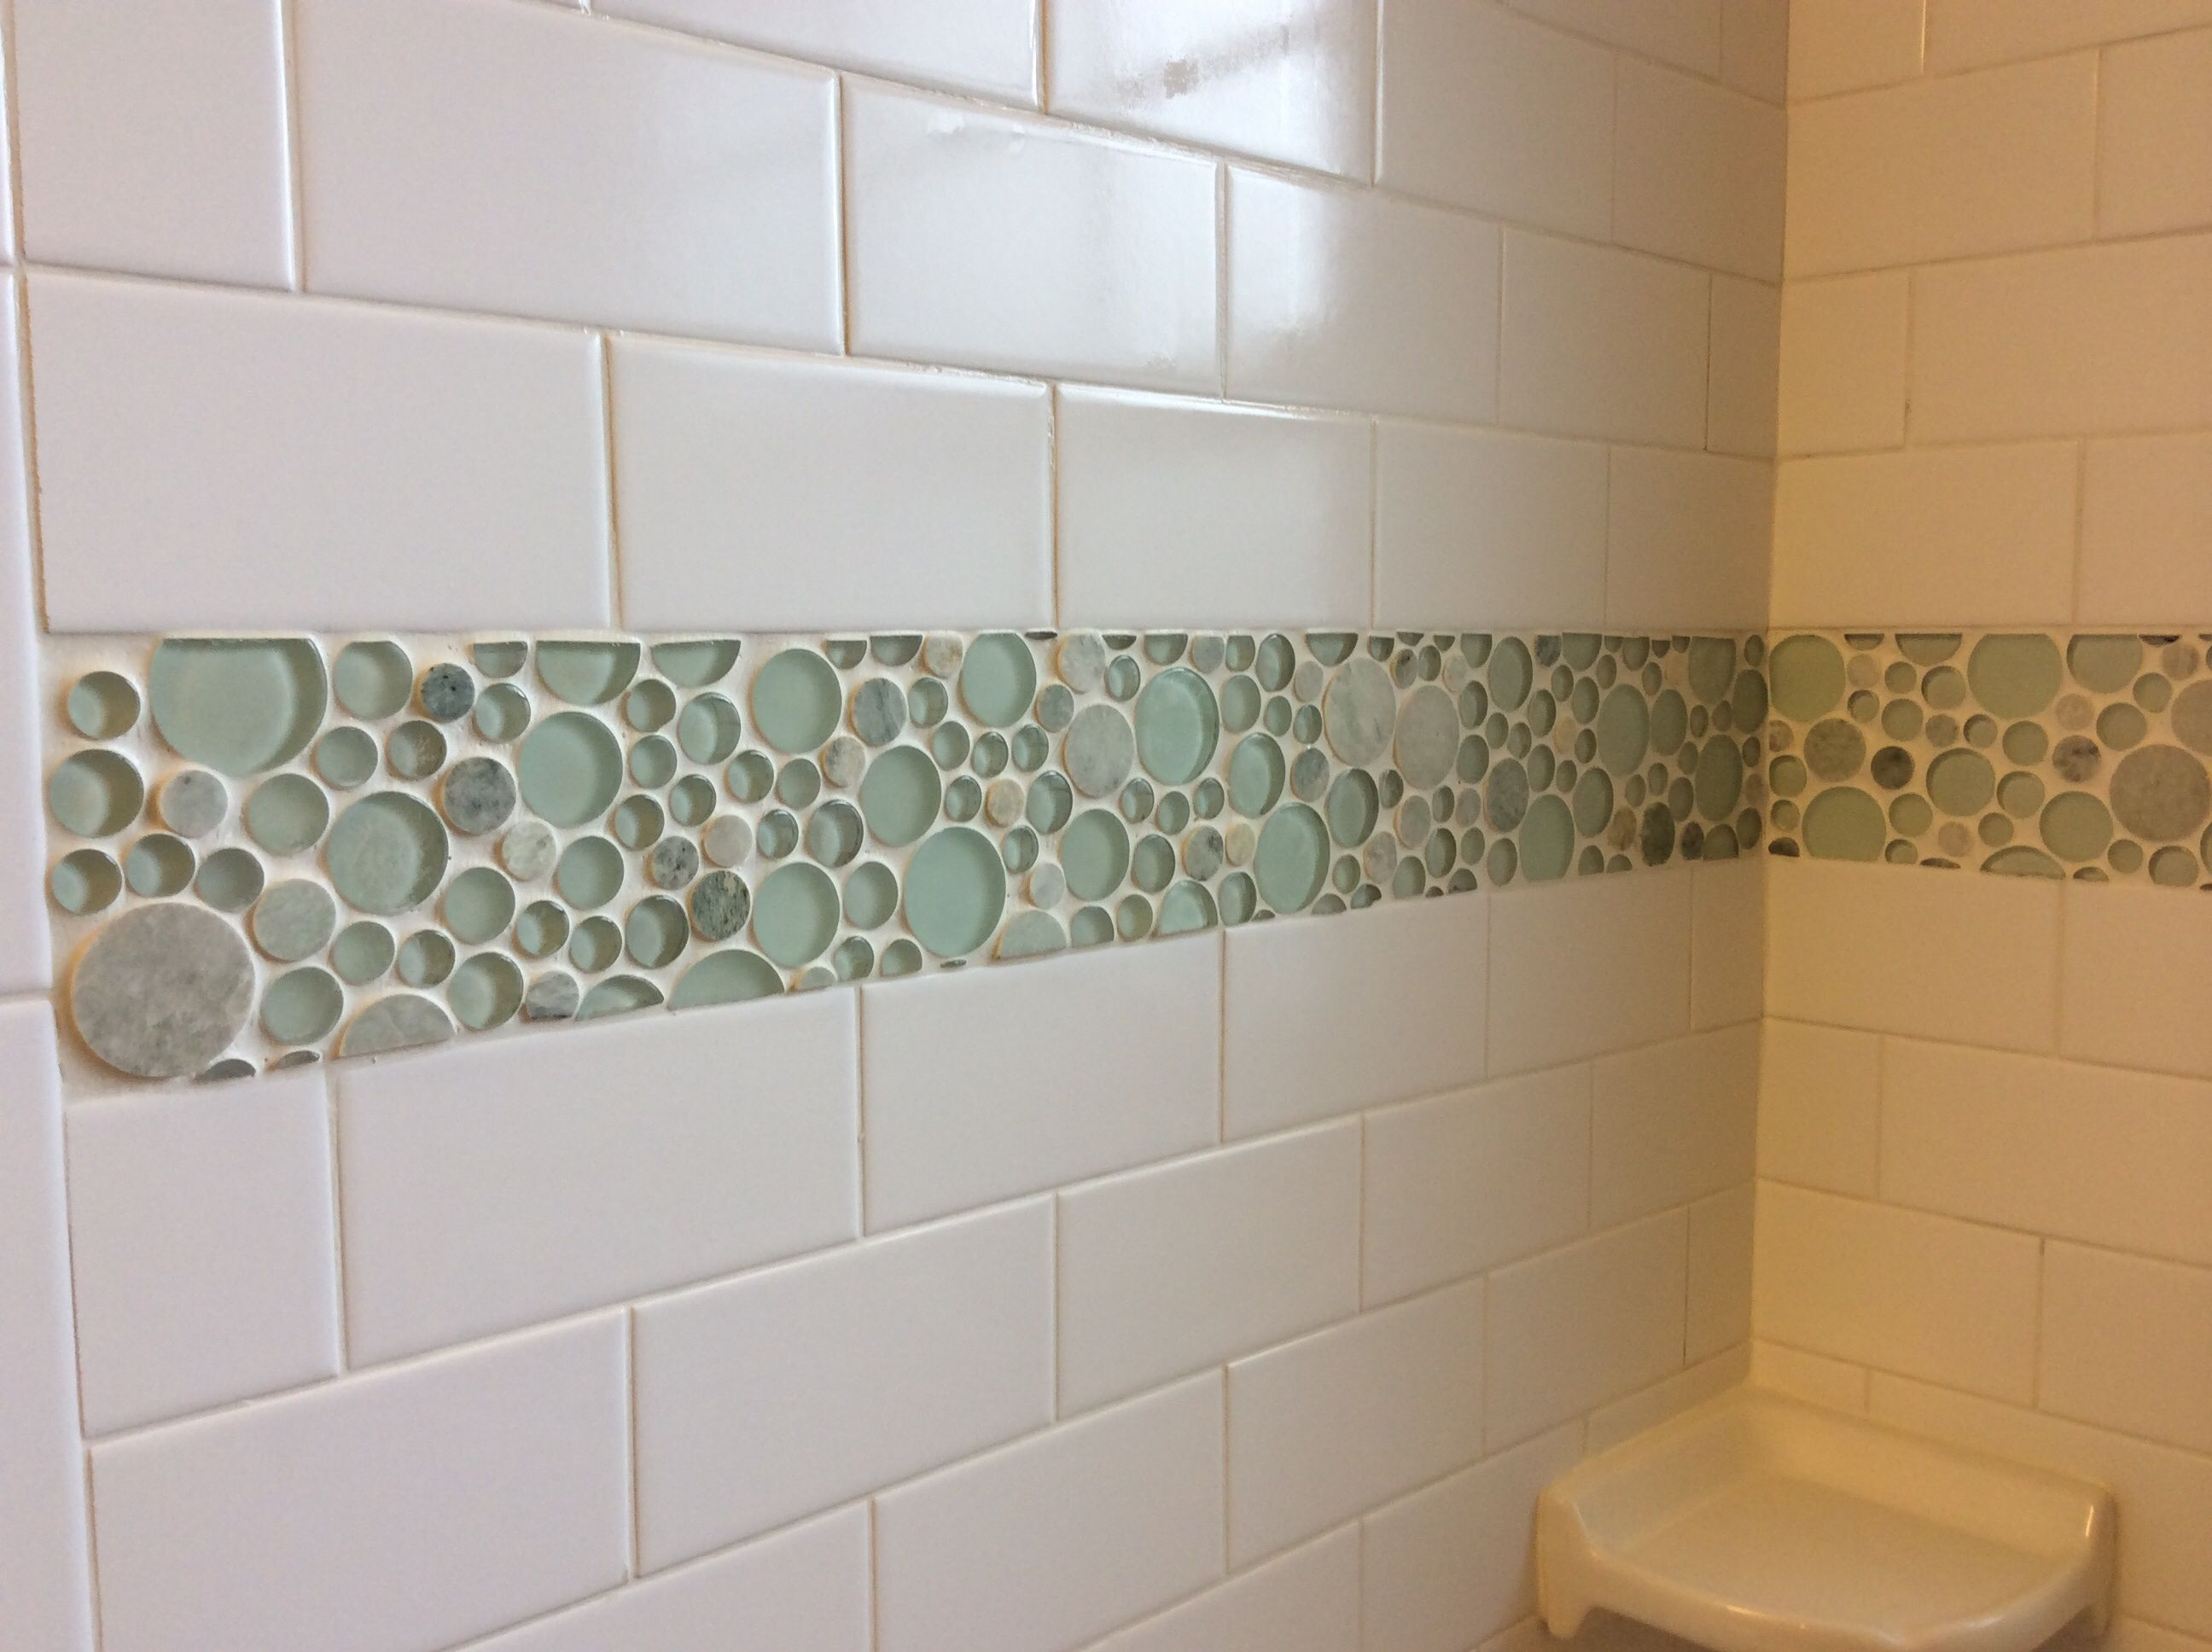 White Shower Tile With Bubble Tile Border Google Search In 2020